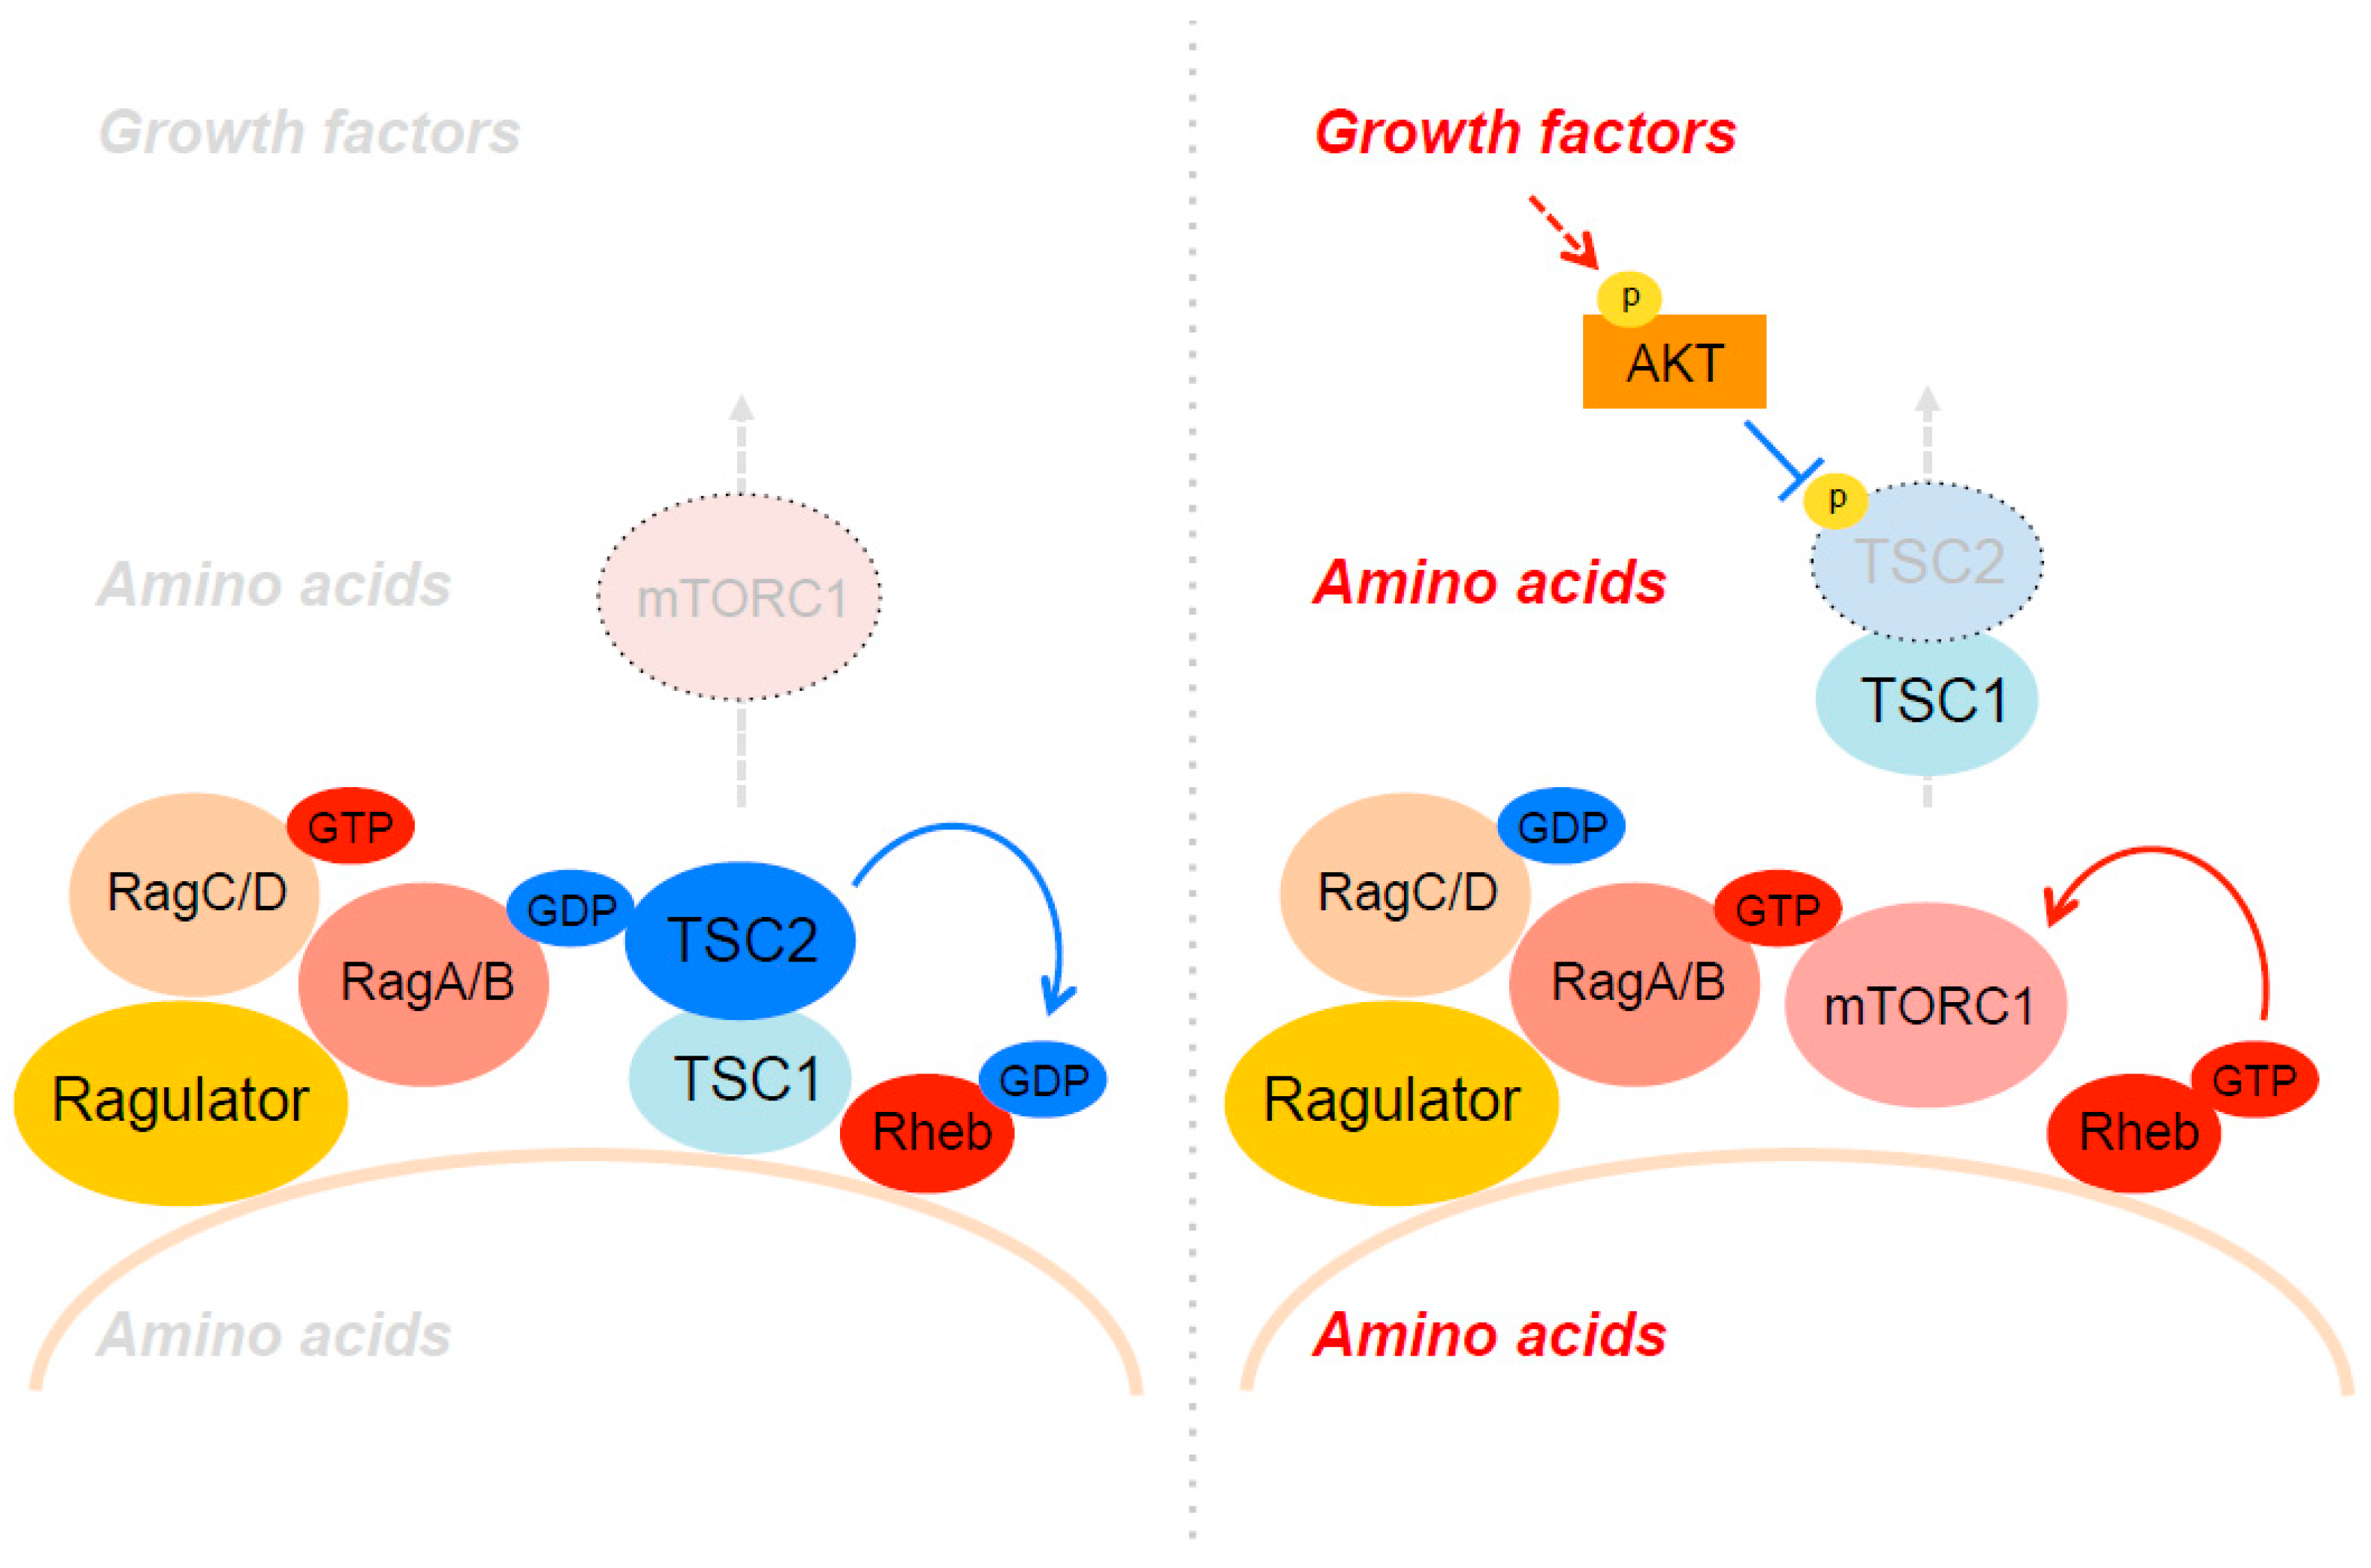 Biomolecules | Free Full Text | Lysosomal Regulation Of MTORC1 By Amino  Acids In Mammalian Cells | HTML